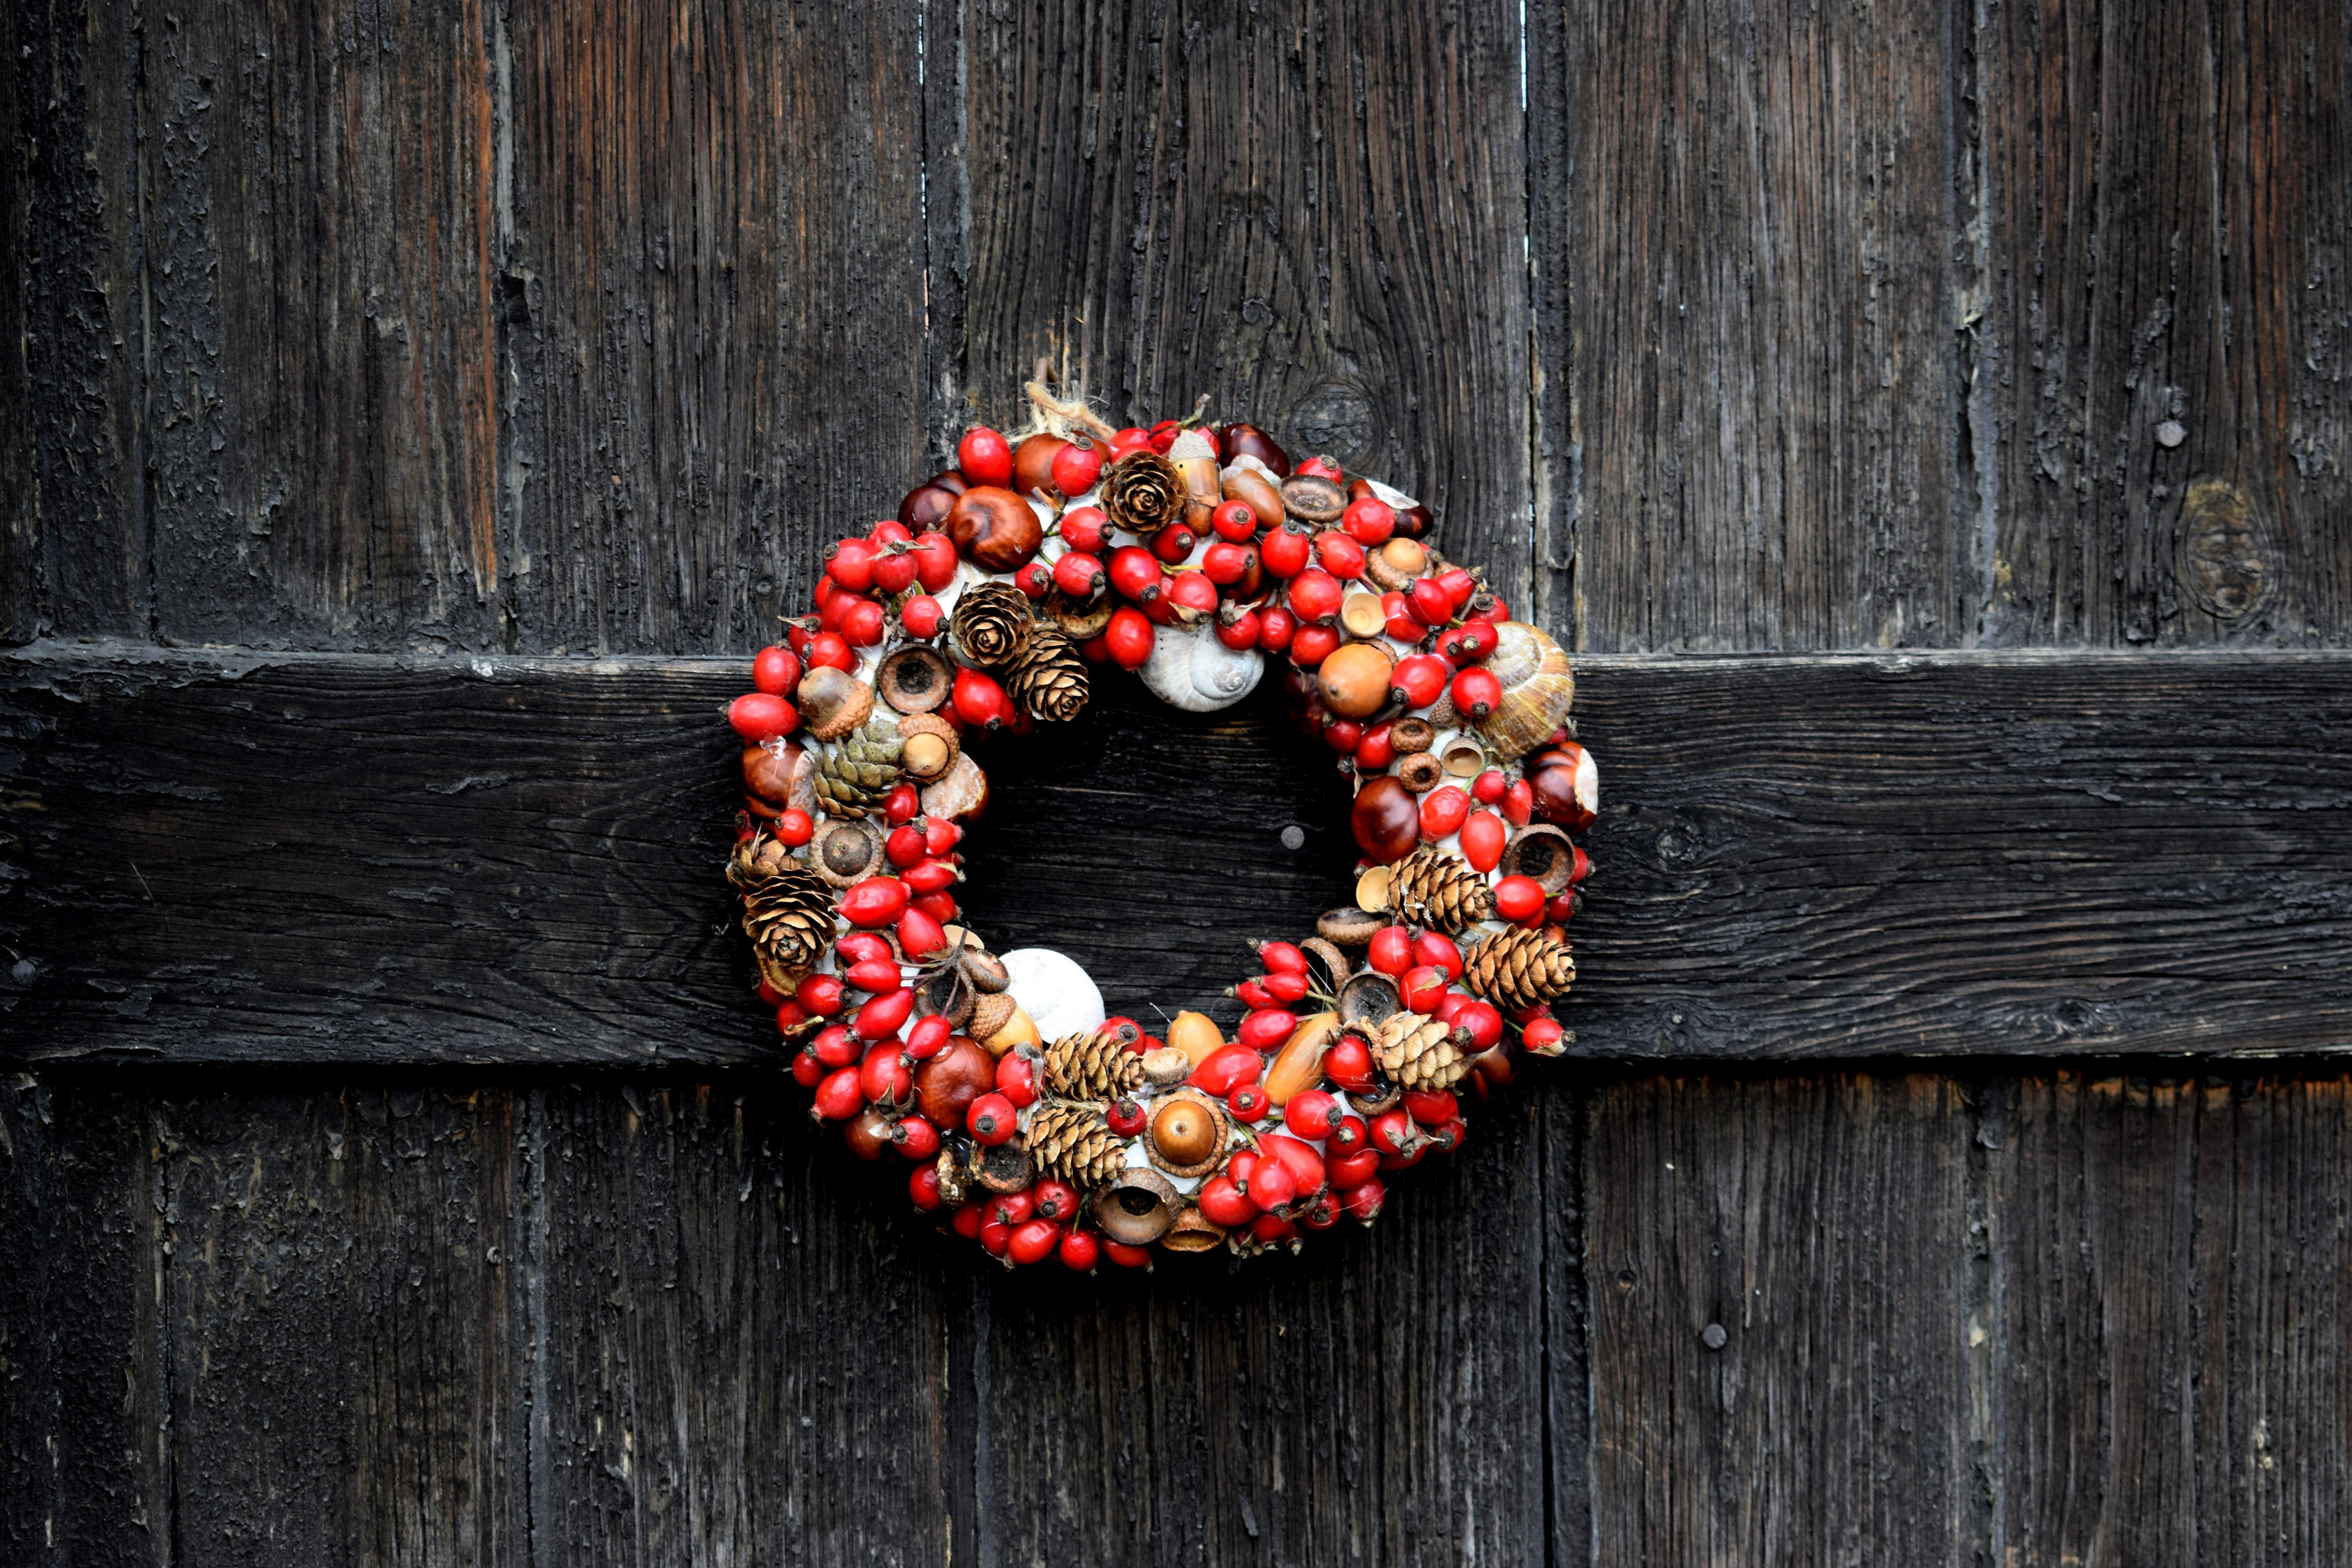 Red and Brown Fruits Wreath